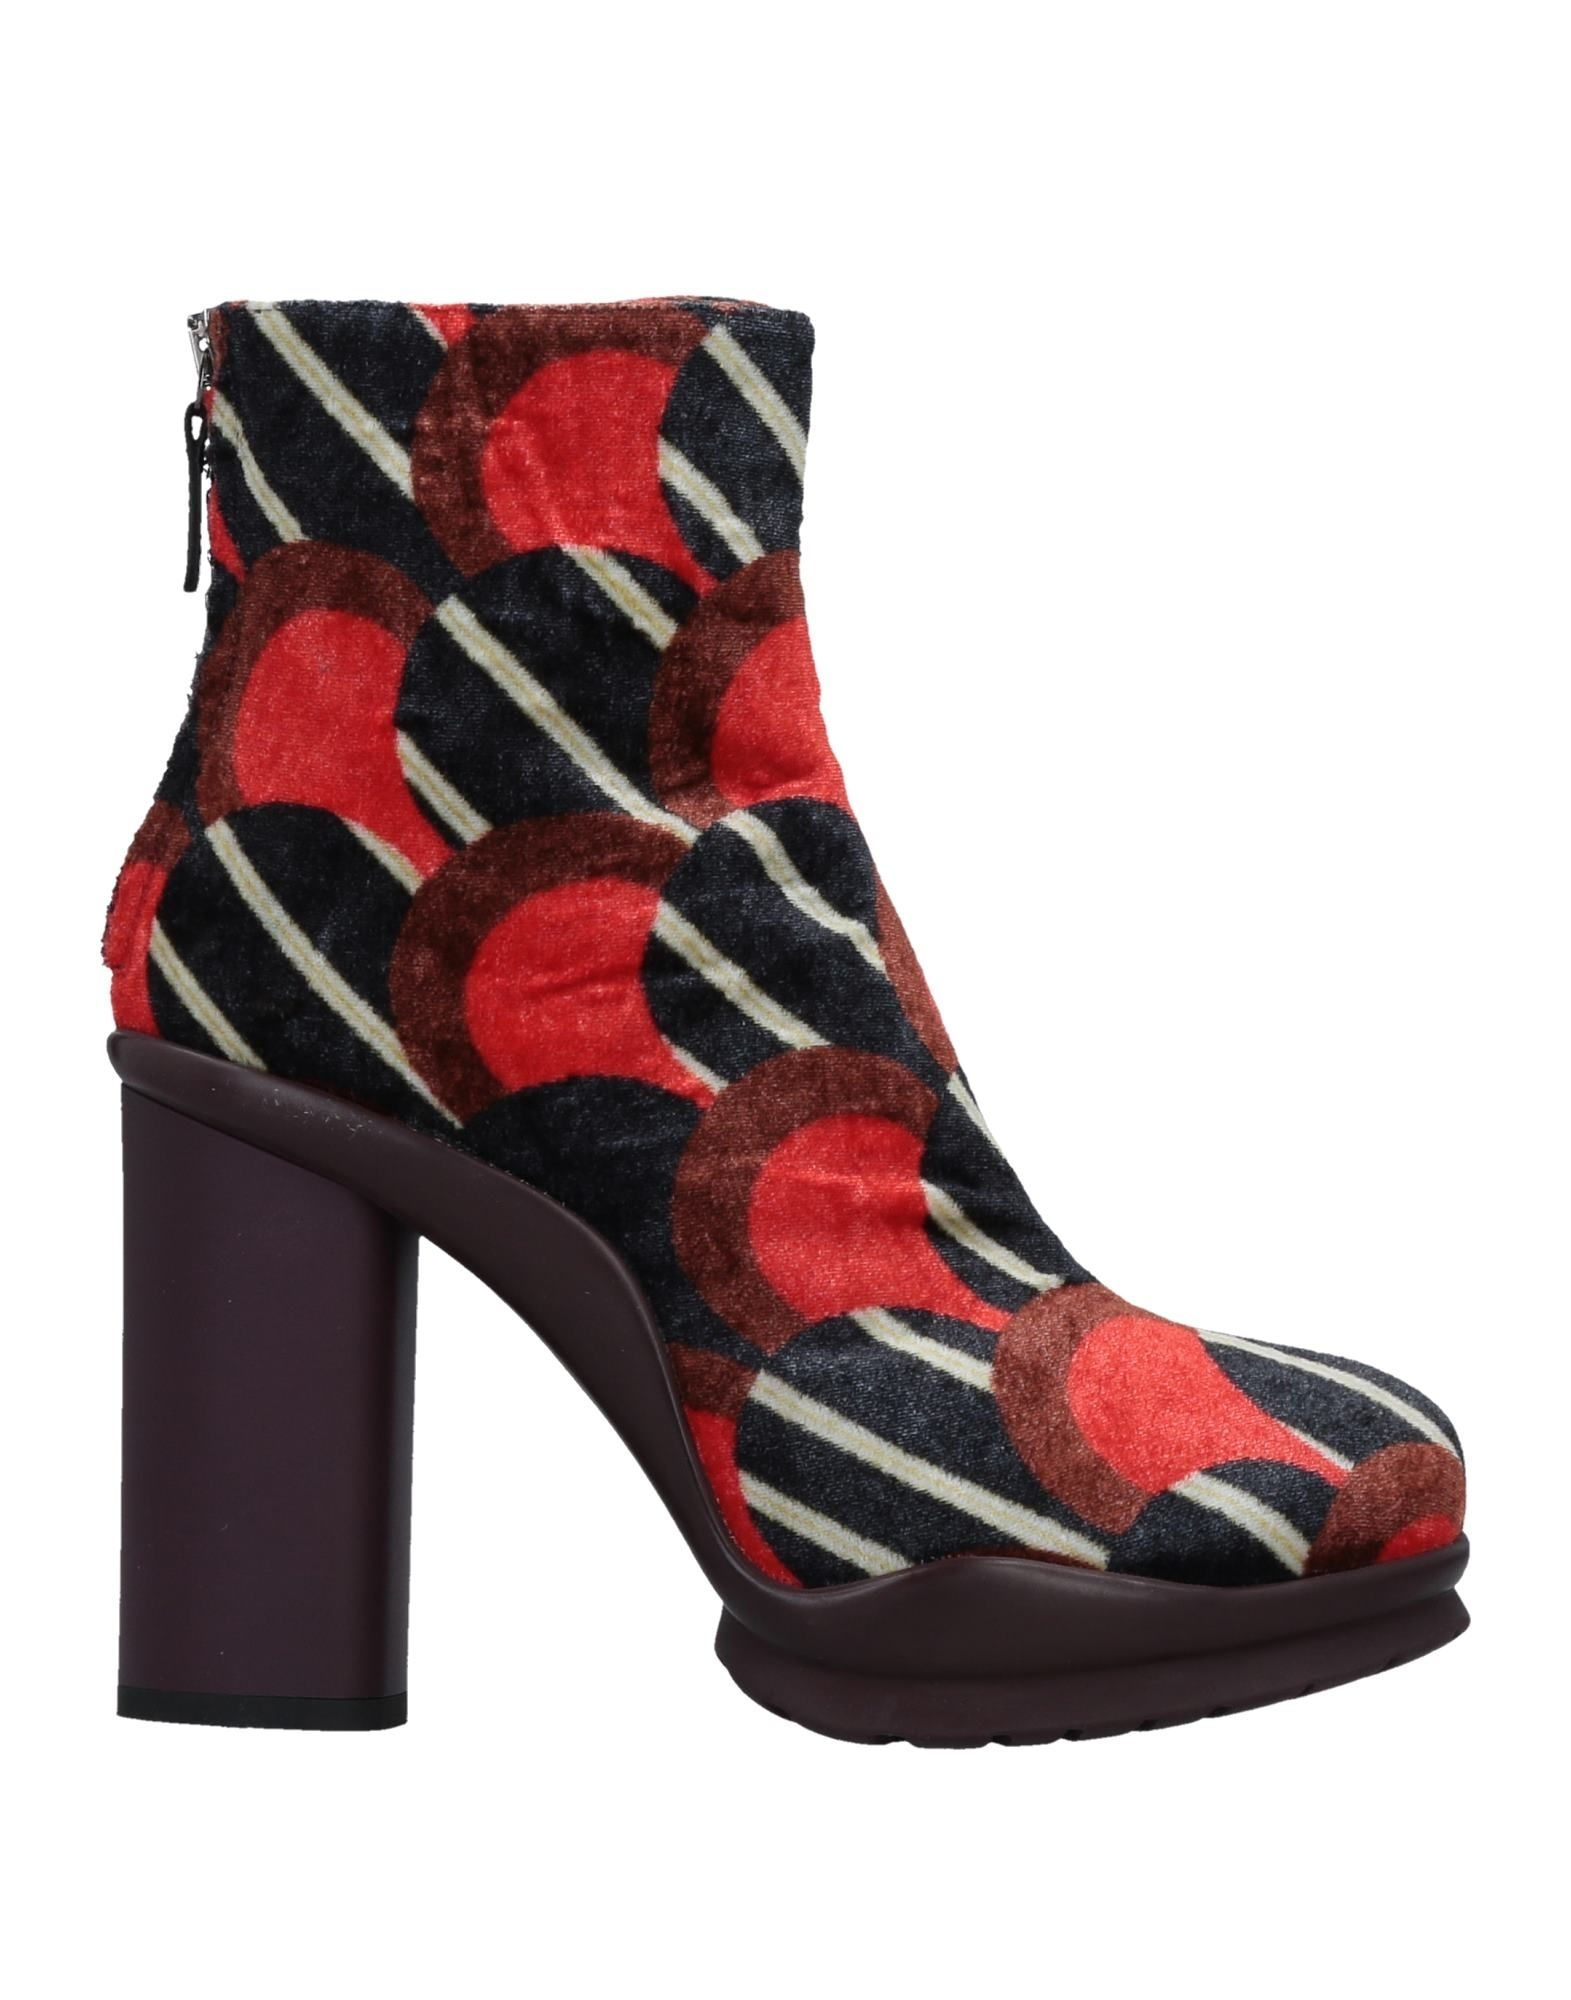 Pinko Pinko Ankle Boot - Women Pinko Pinko Ankle Boots online on  Canada - 11505611GL 01ff22